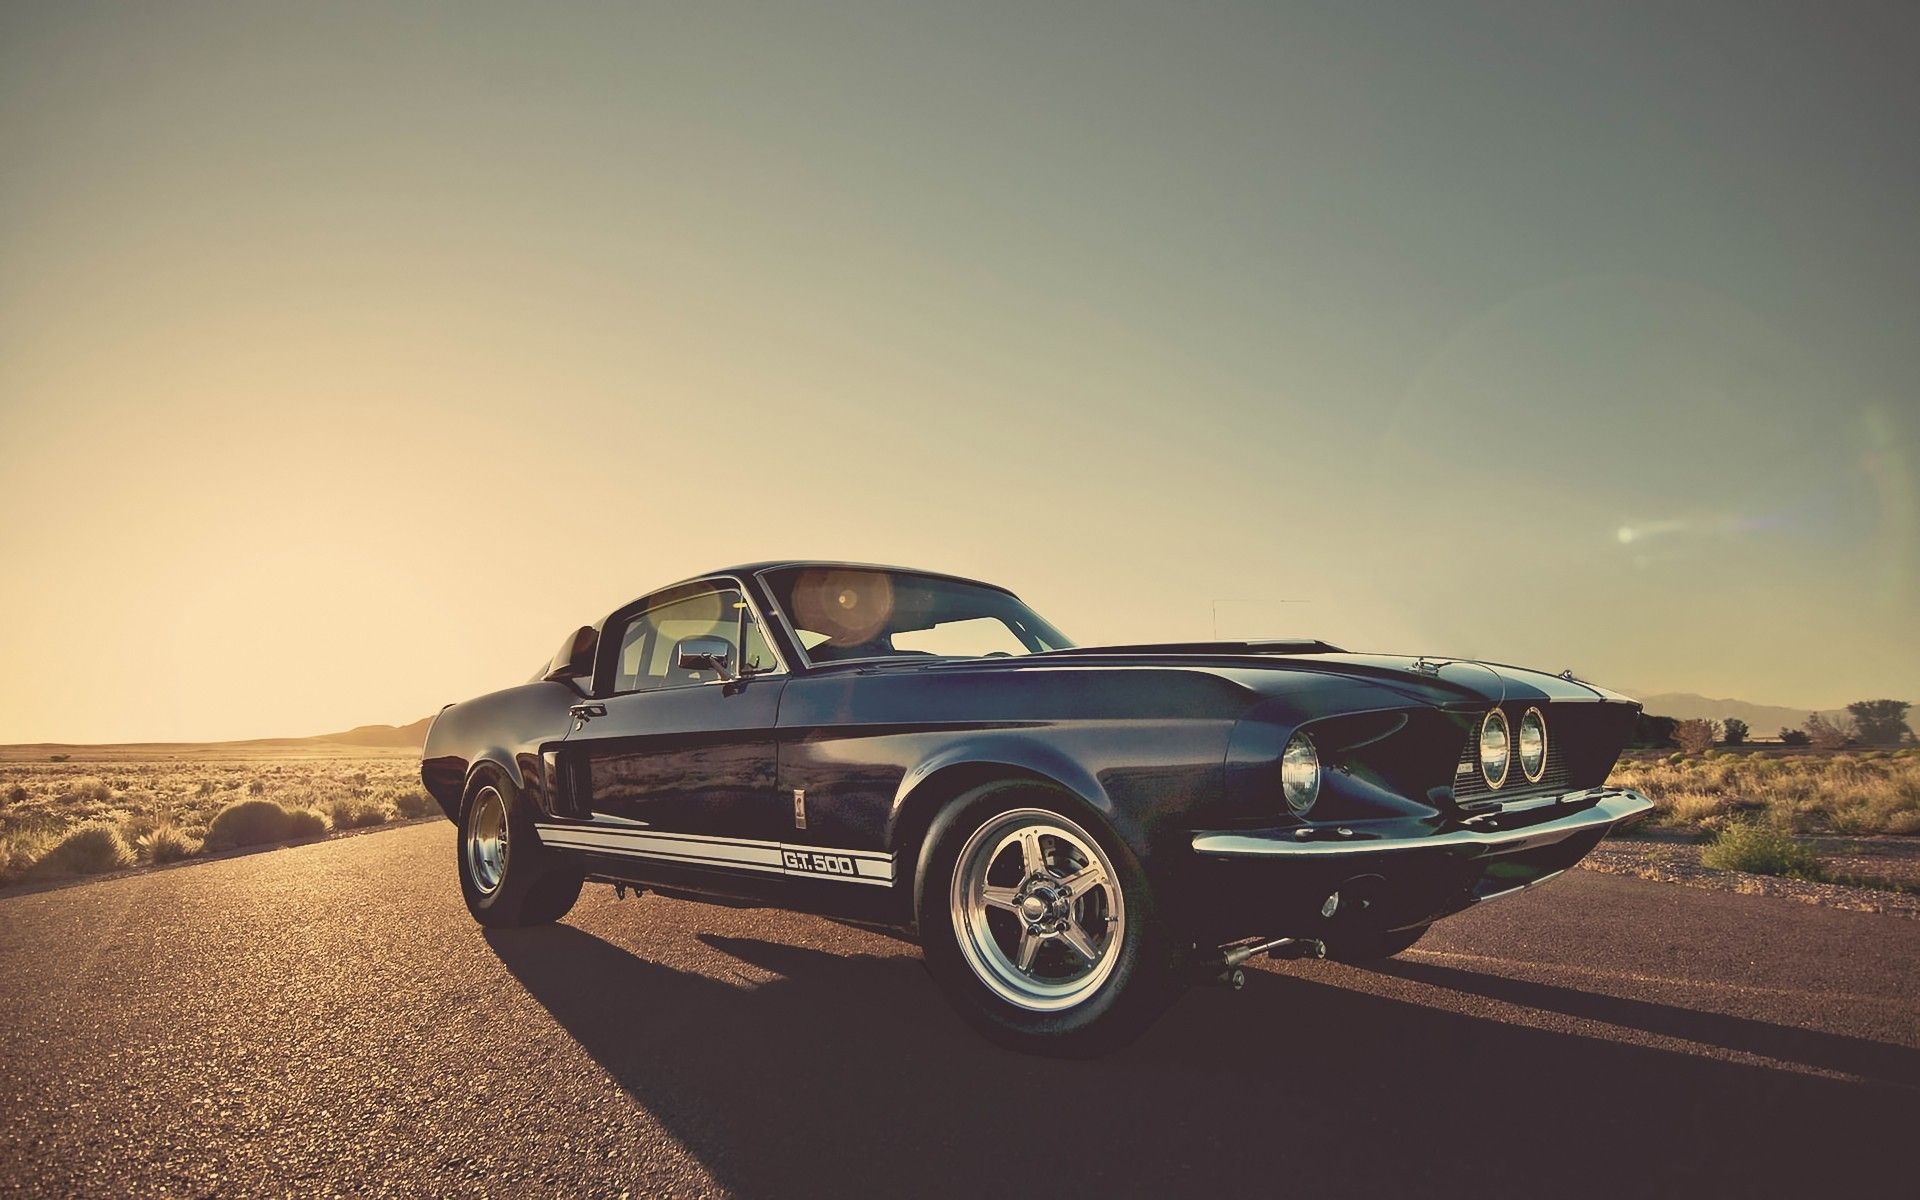 Wallpapers Hd Autos Coches Con Imagenes Mustang Gt500